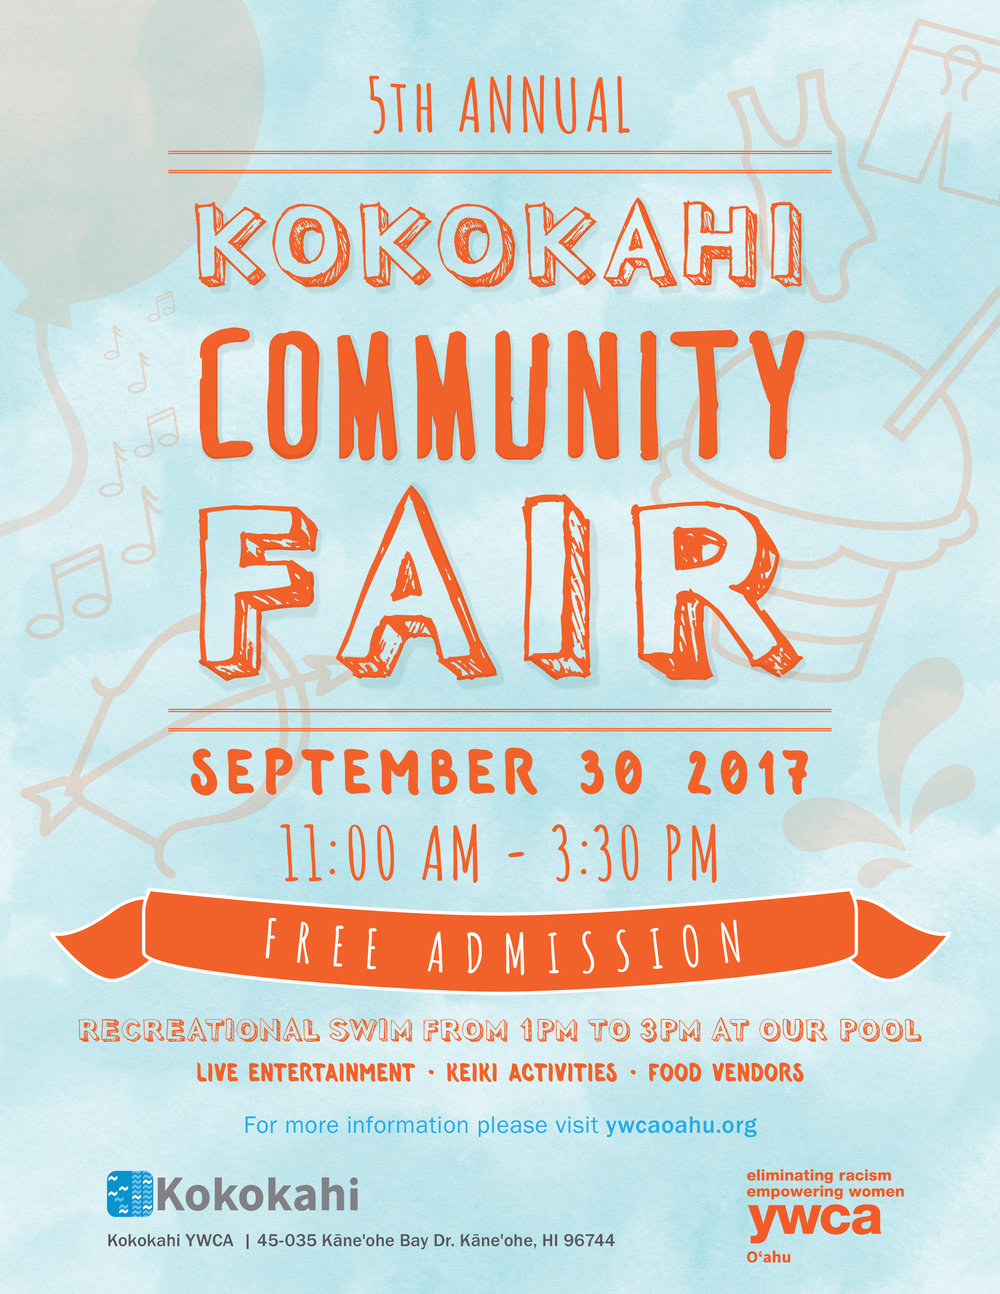 2017 Kokokahi Community Fair flyer PS.jpg